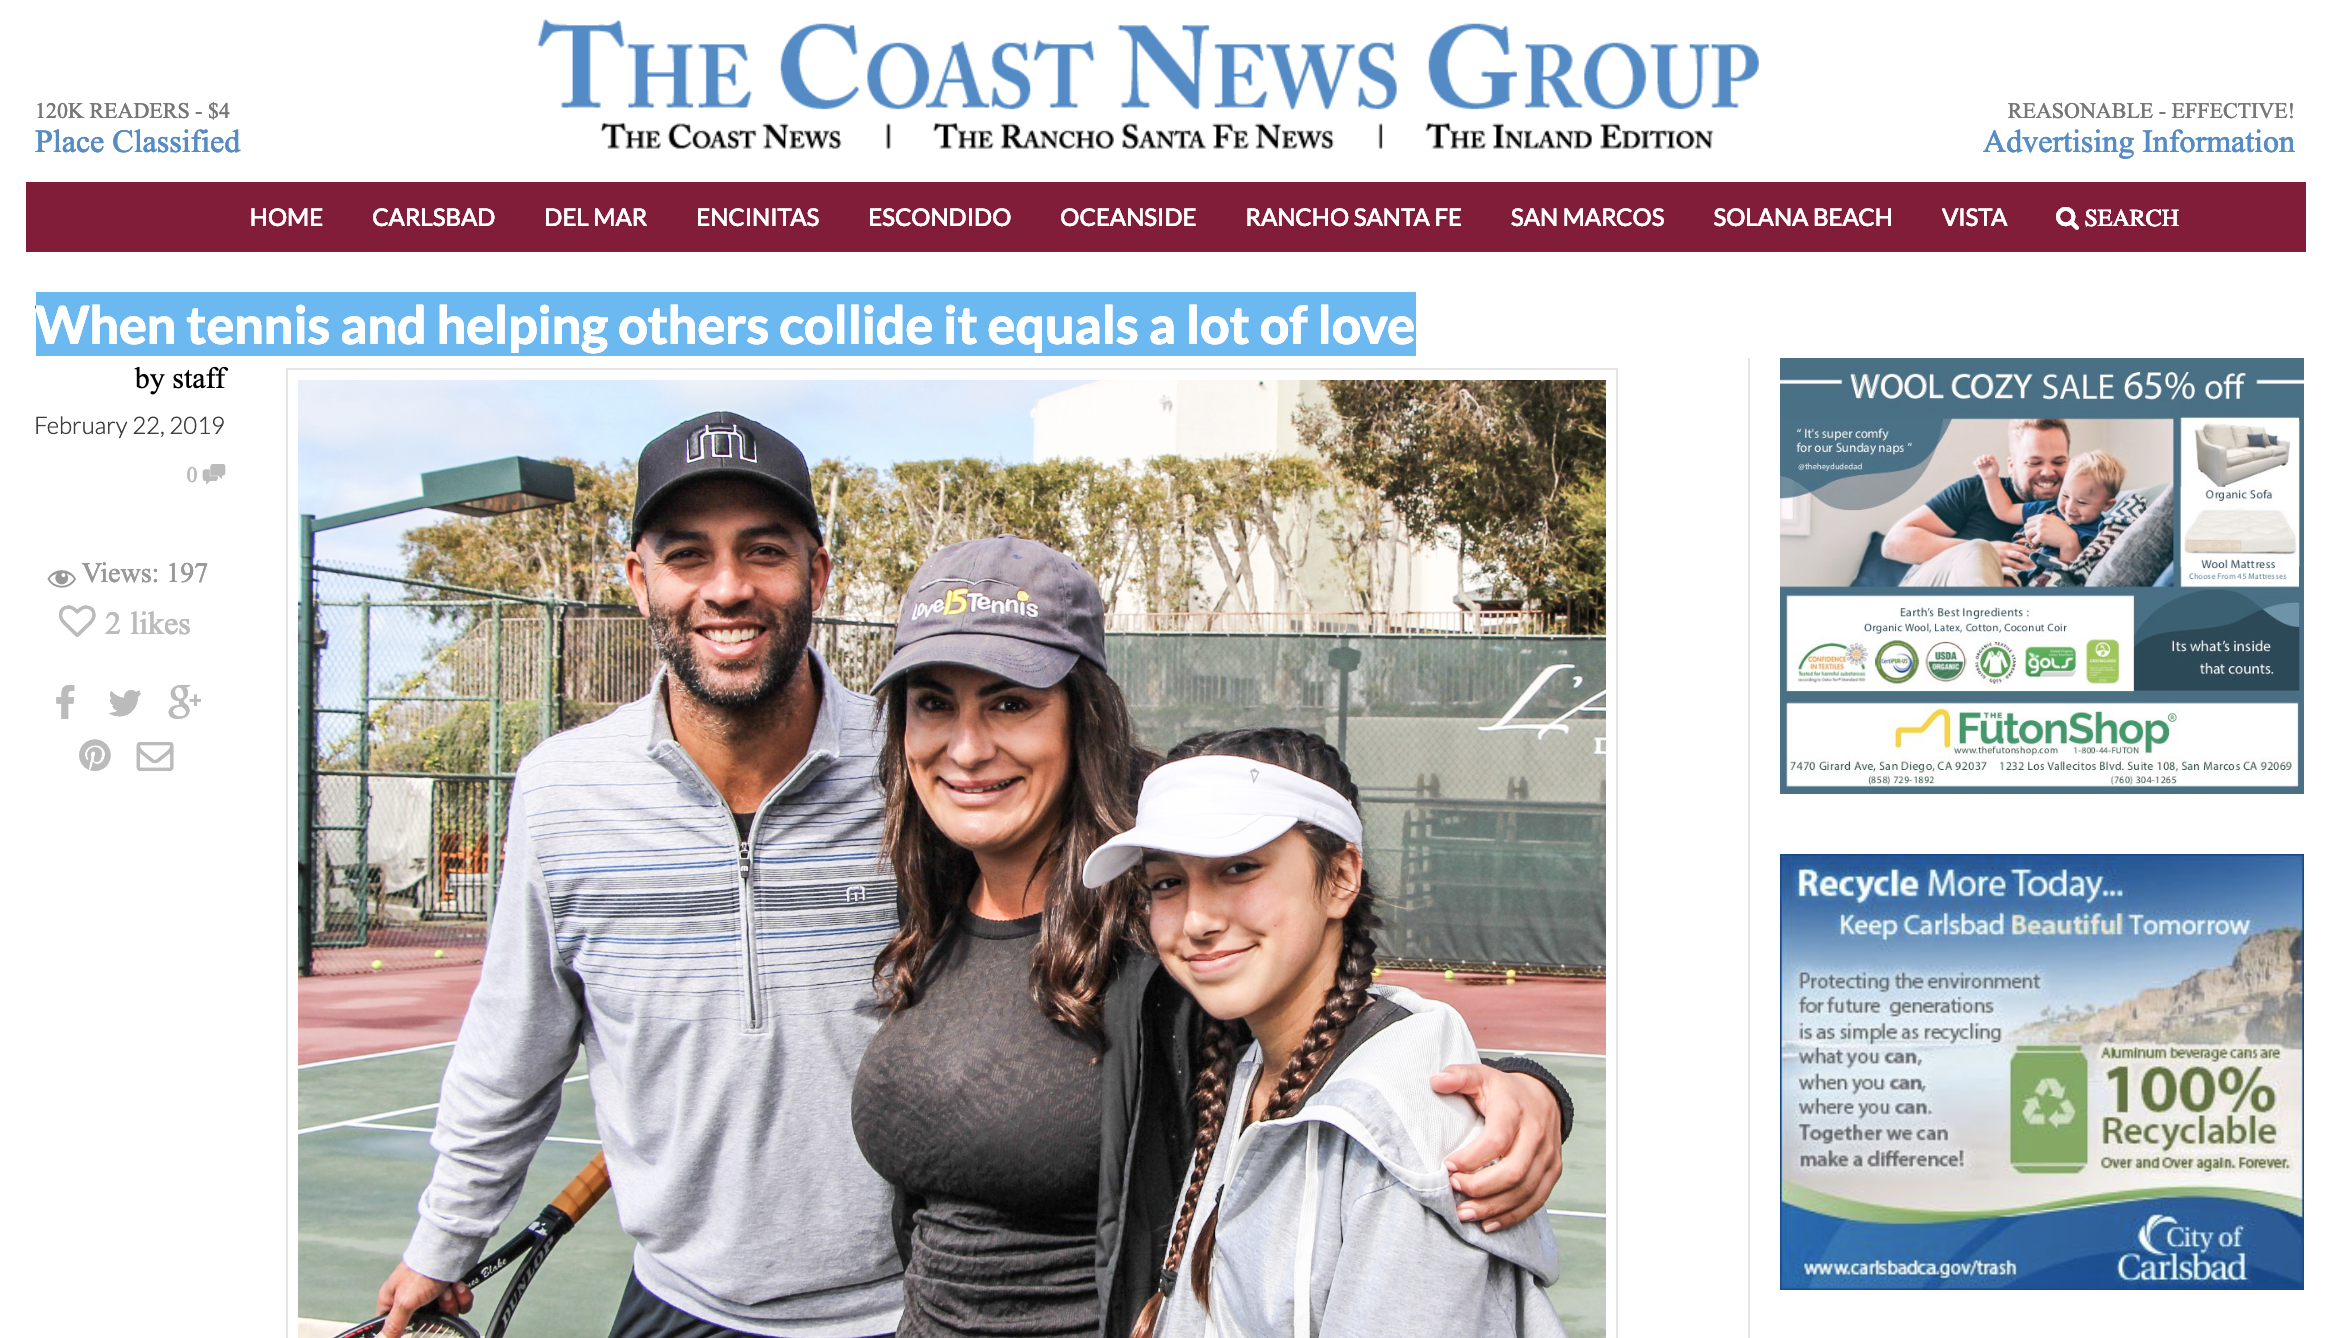 The Coast News Group feature